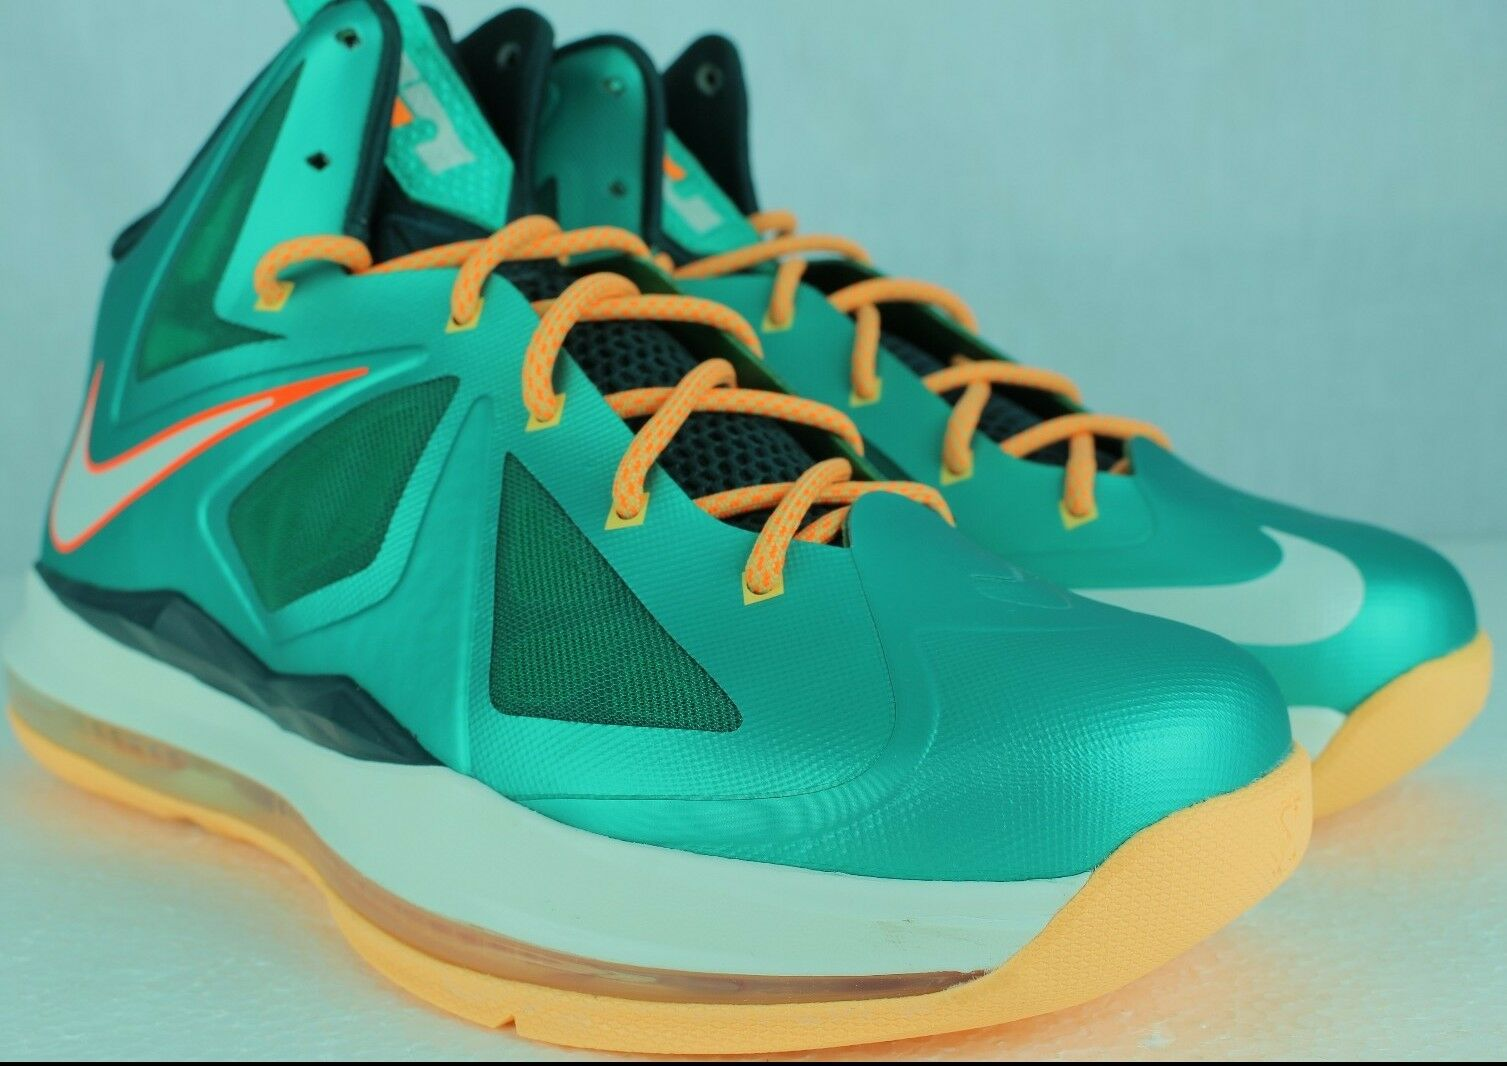 NIKE LEBRON X 10 ATOMIC TEAL DOLPHINS SZ: 5.0 Y SAME AS WOMAN 6.5 NEW RARE DS